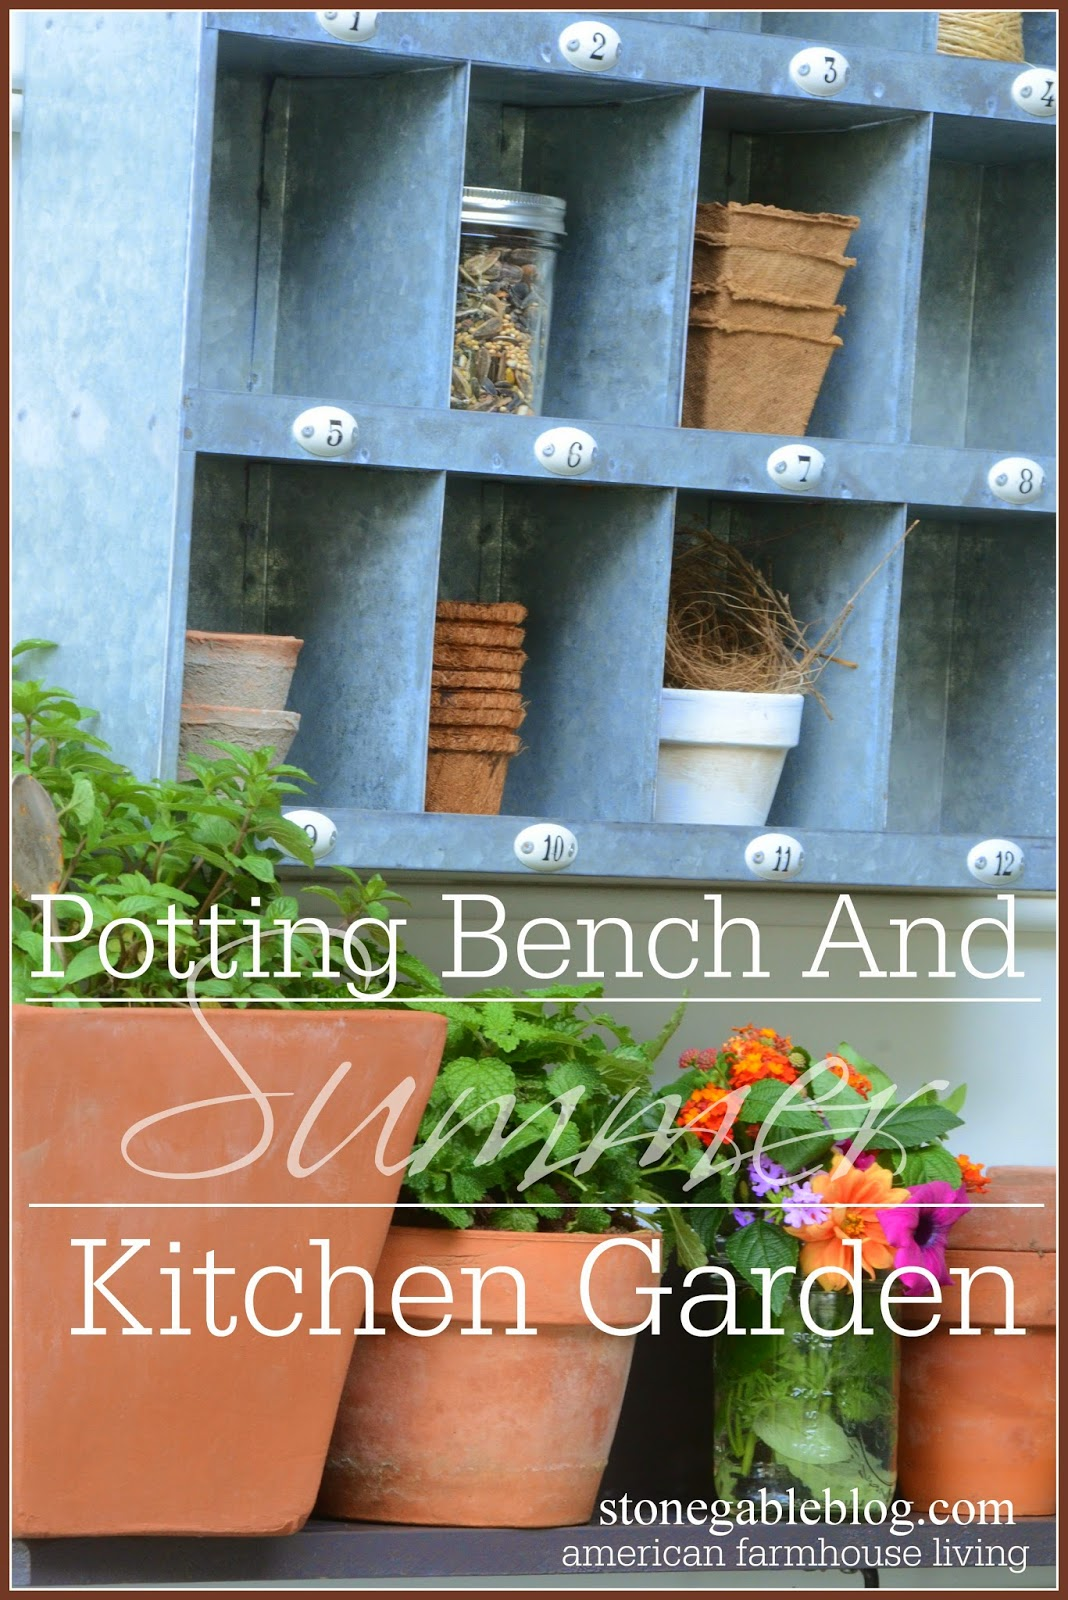 SUMMER POTTING BENCH AND KITCHEN GARDEN - StoneGable